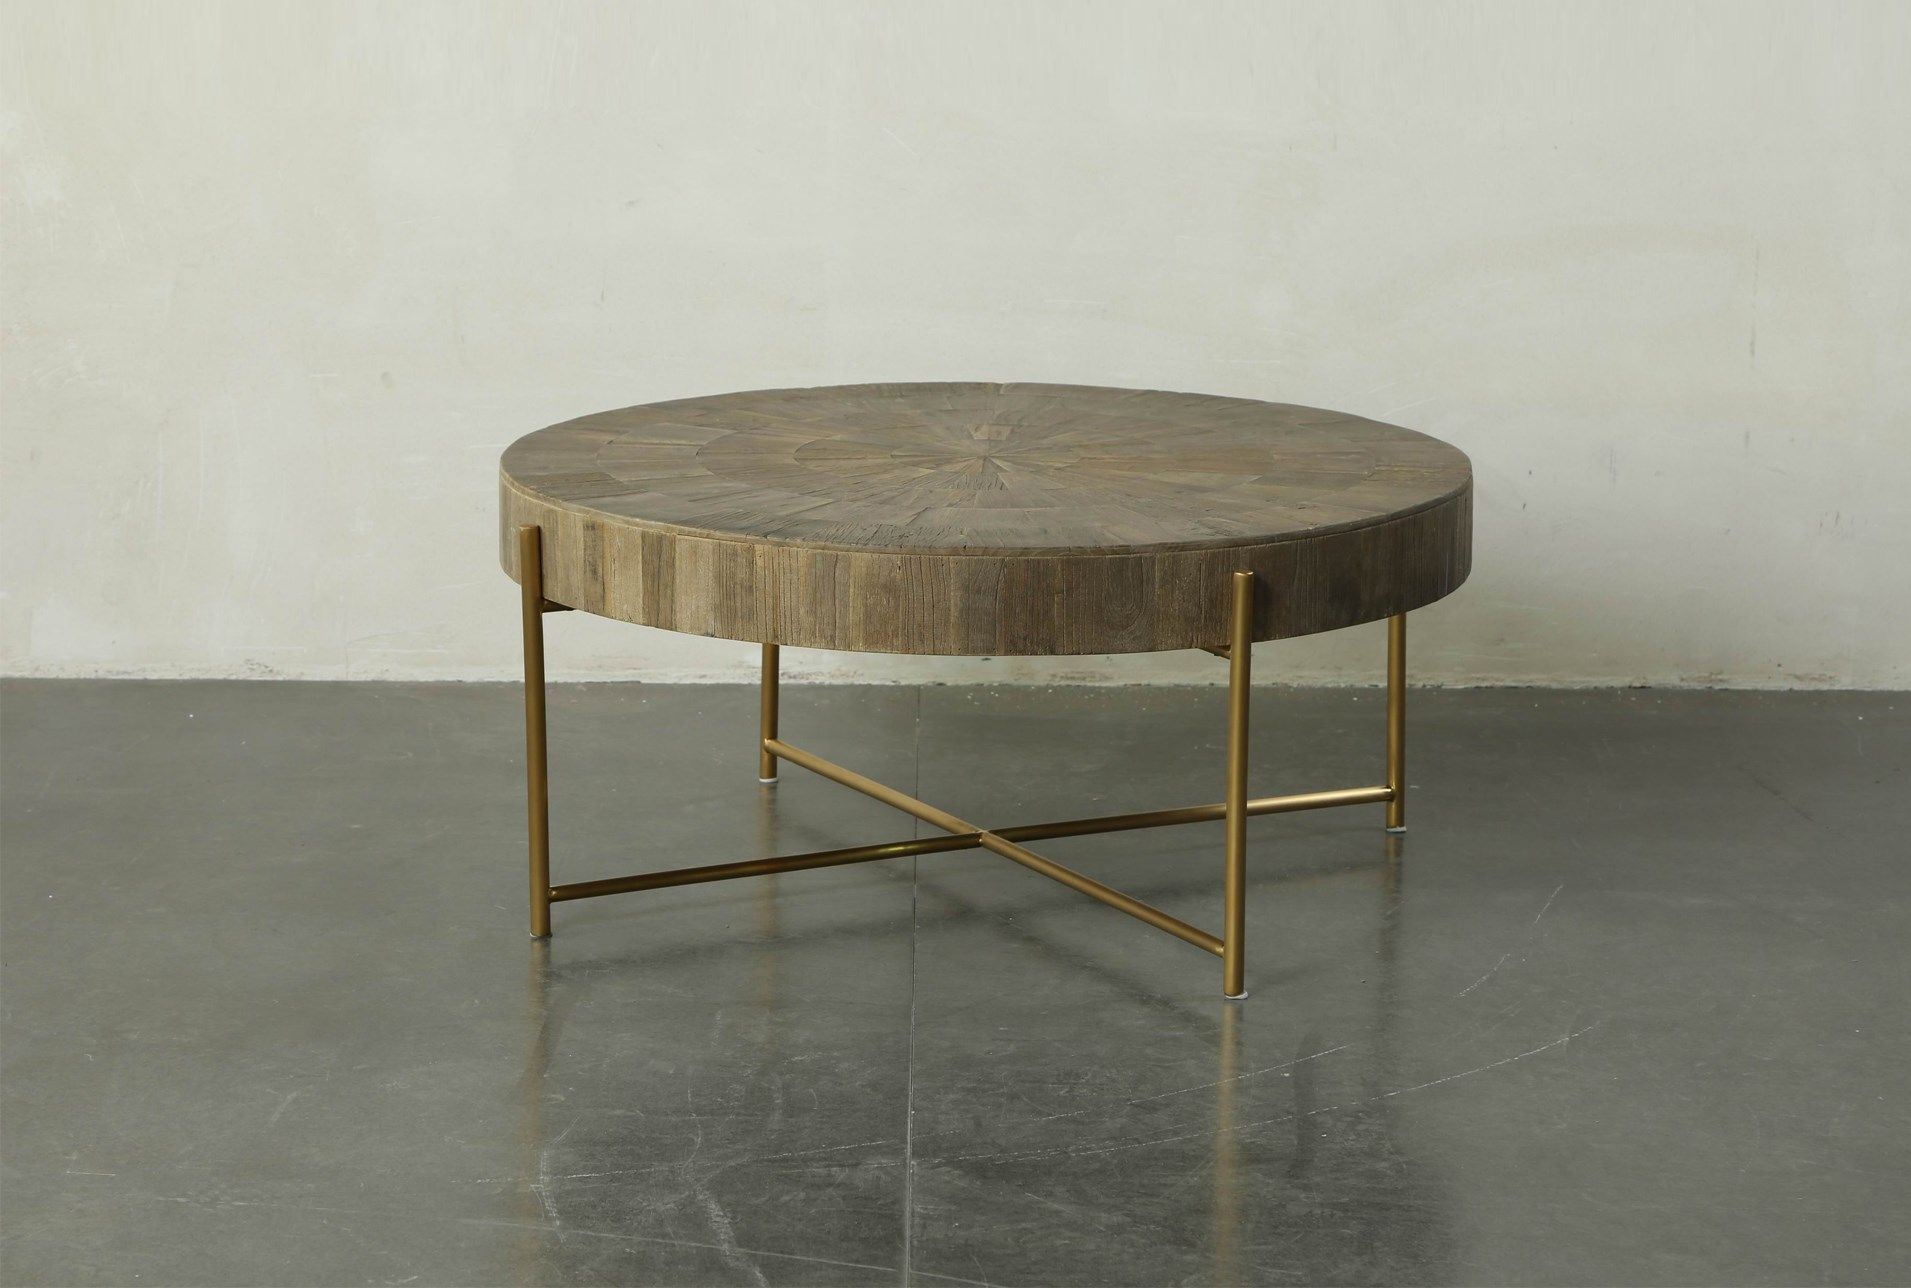 Round Natural Wood And Gold Coffee Table Gold Coffee Table Coffee Table Gold Wood [ 1288 x 1911 Pixel ]